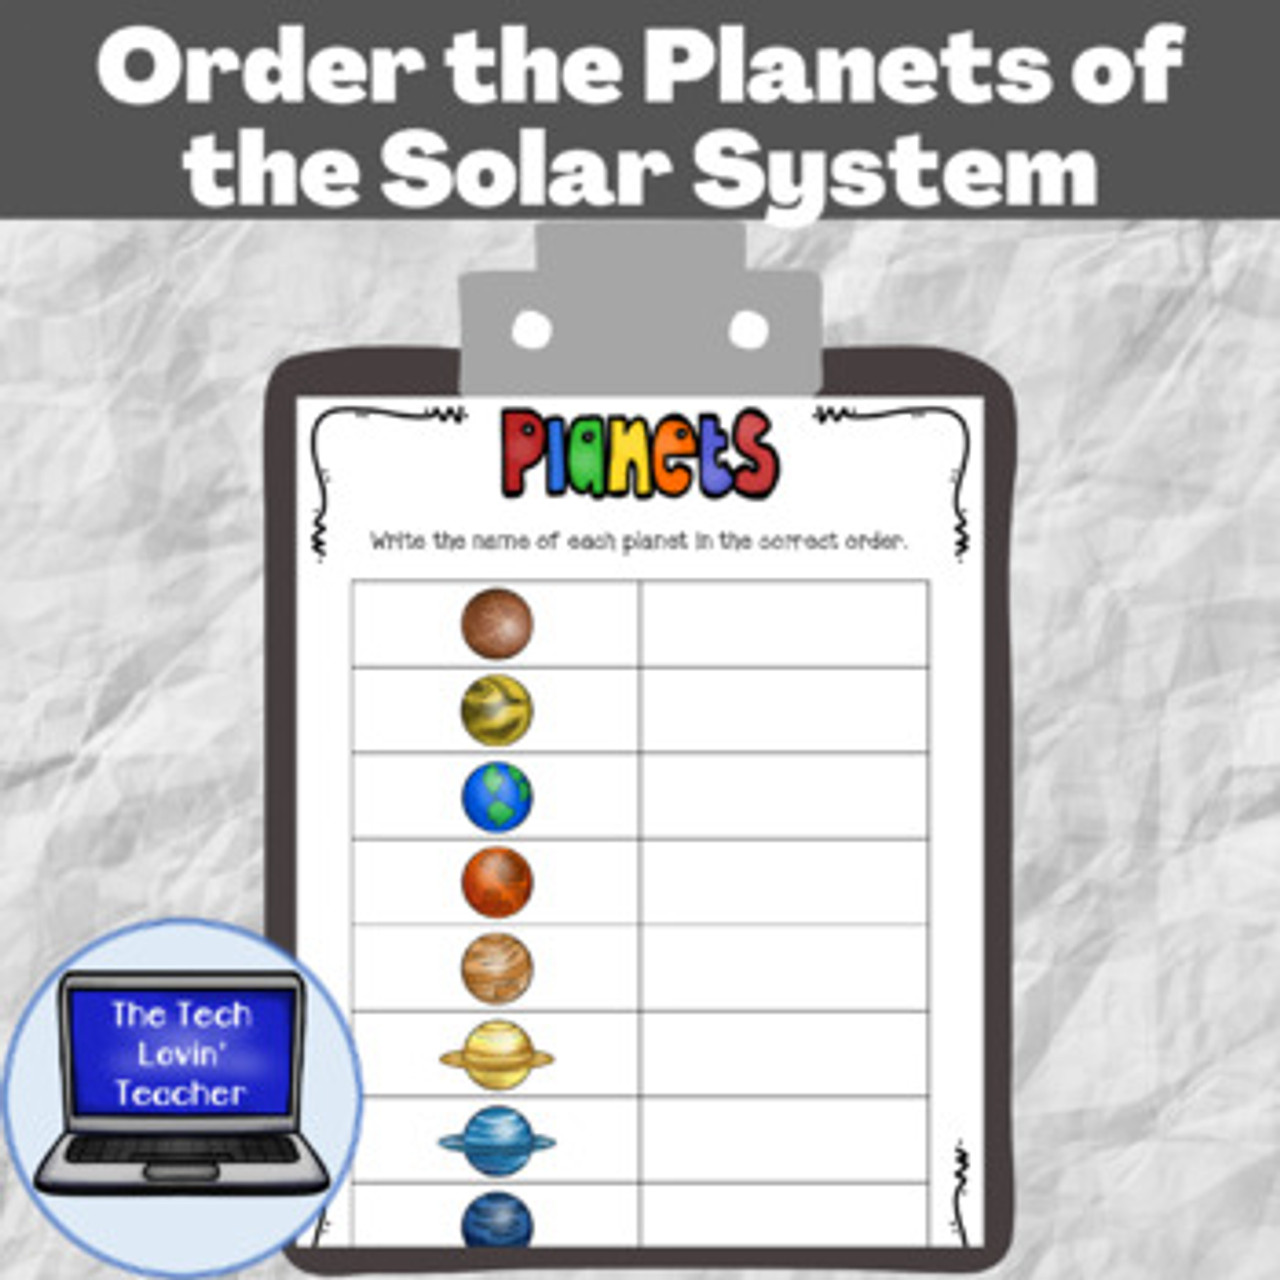 Order the Planets of the Solar System (Free)